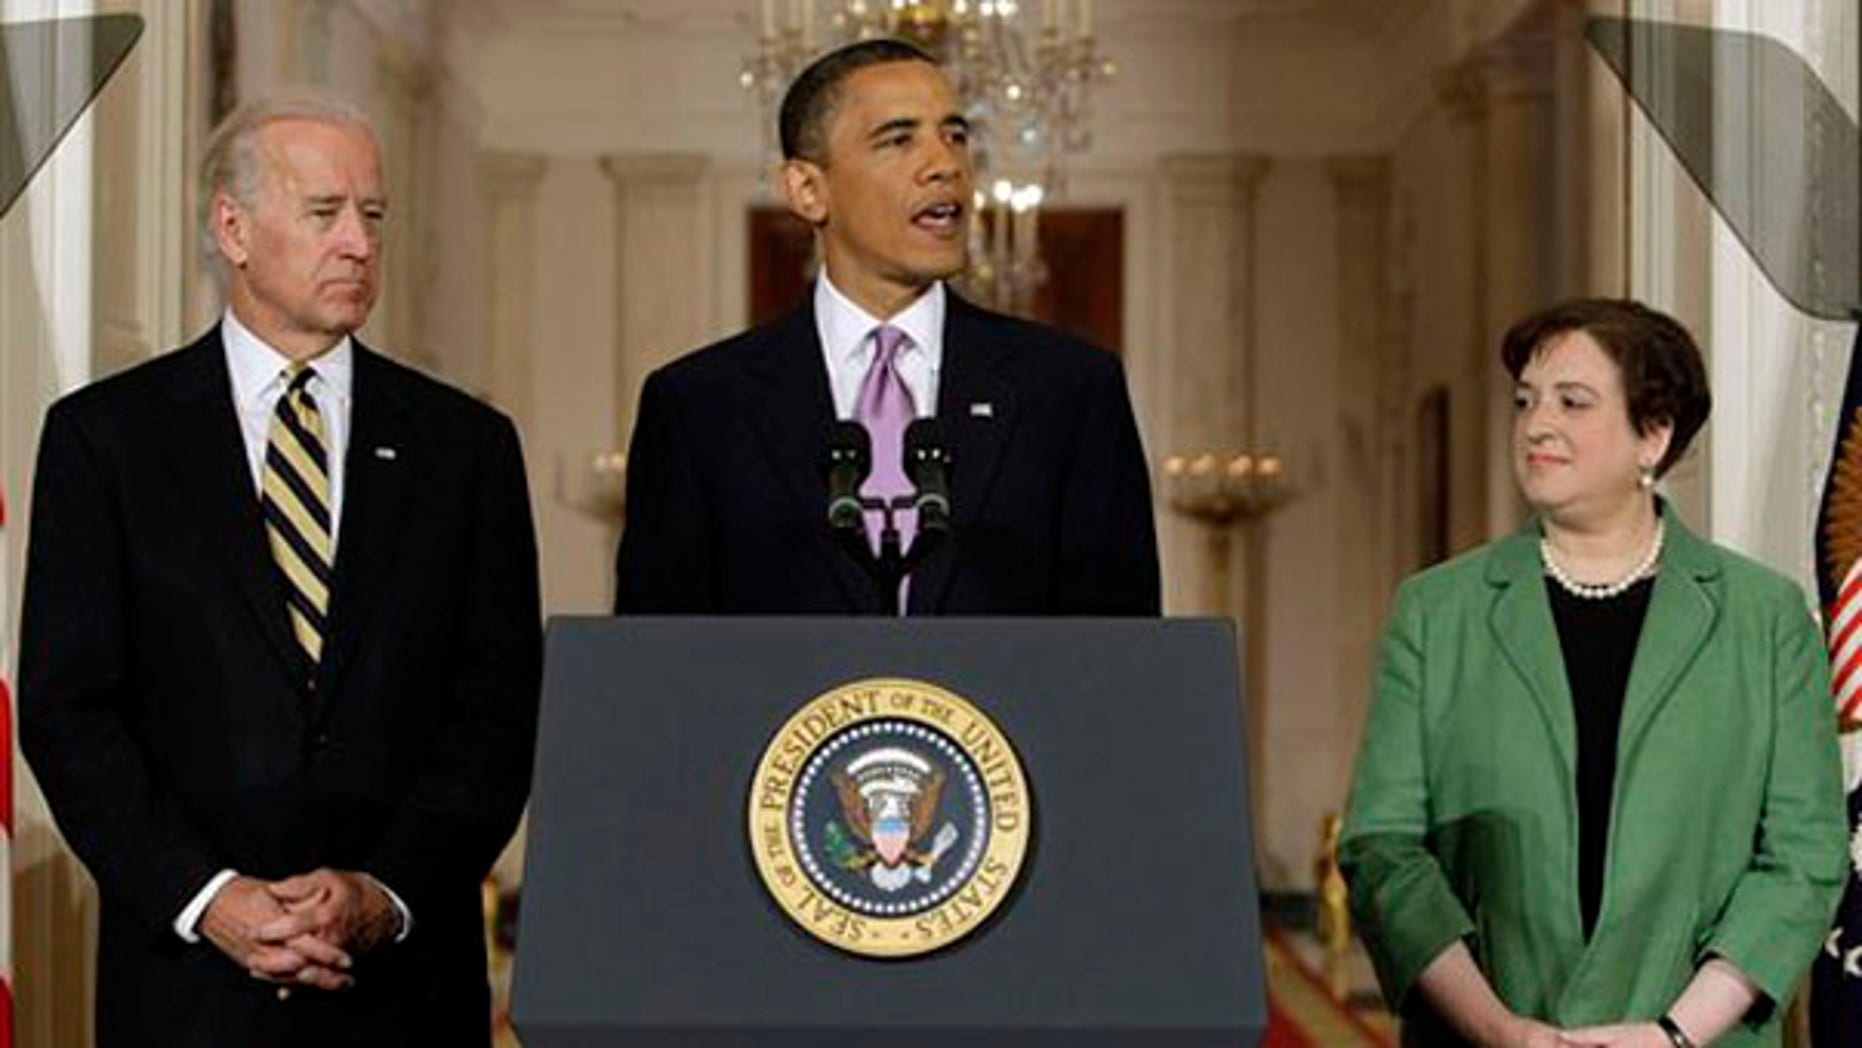 President Obama introduces Elena Kagan as his choice for Supreme Court Justice.